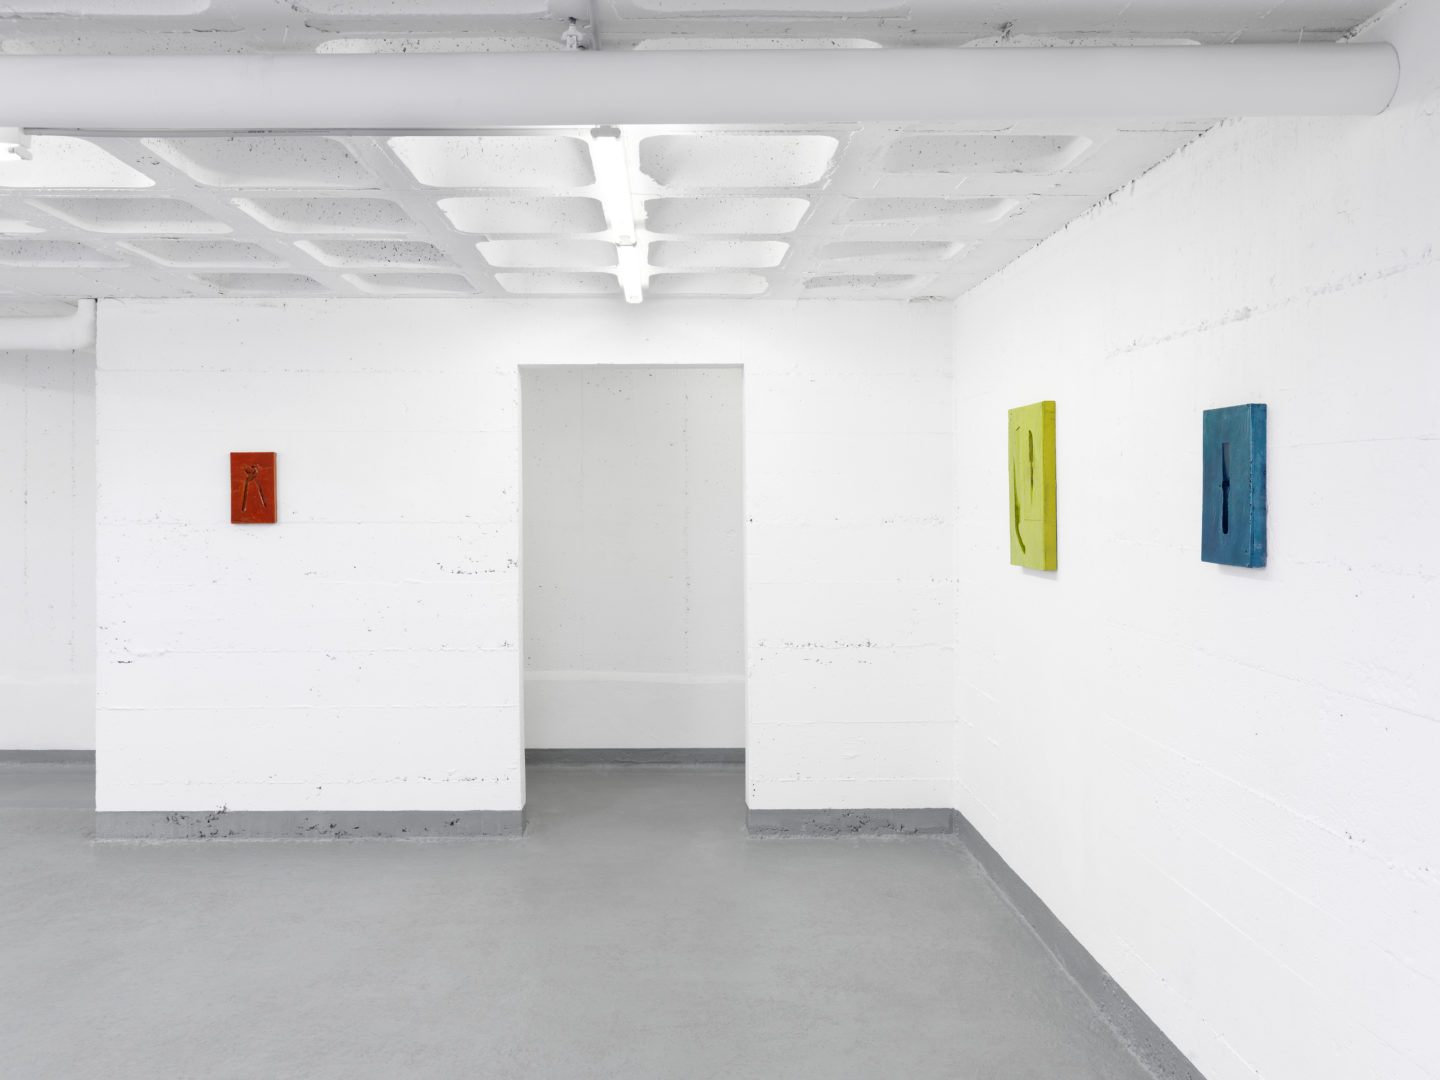 "Exhibition View Zak Kitnick ""CRAFTSMAN BY SEARS AT KMART"" at Ribordy Contemporary / Photo: Annik Wetter / Courtesy: the artist and the gallery"